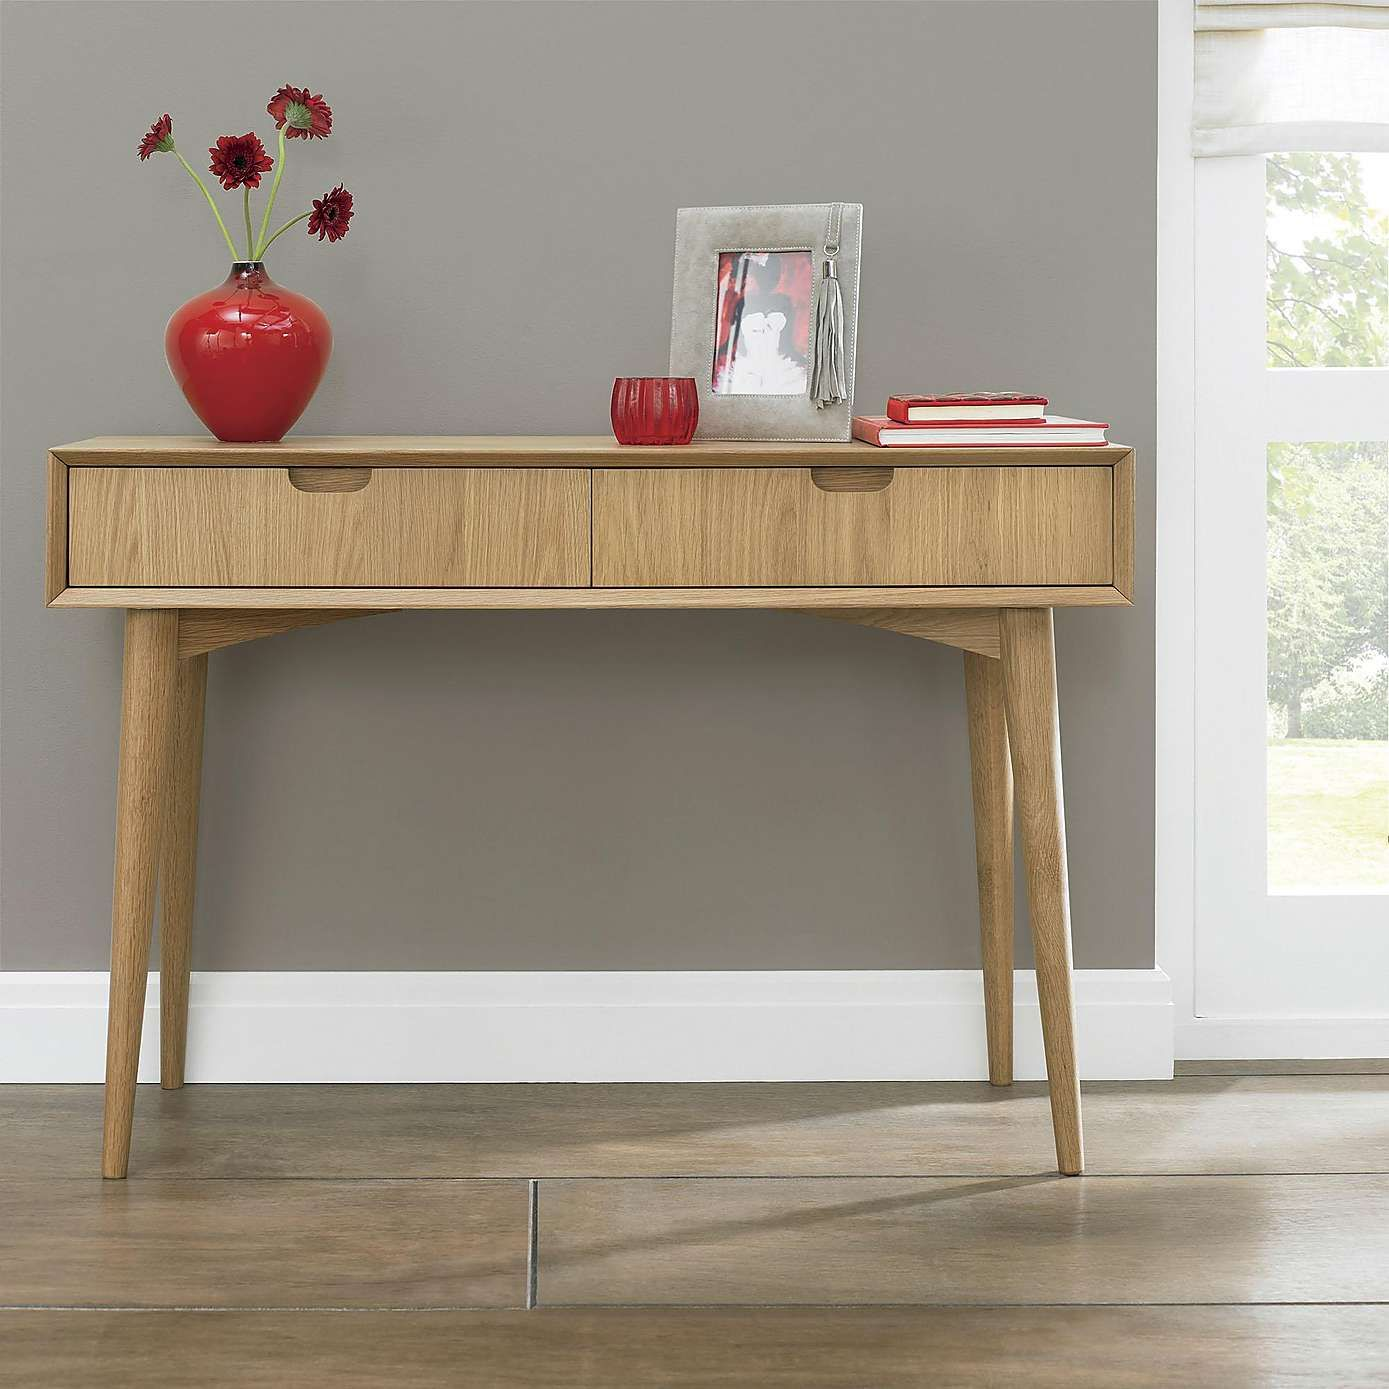 oak hall console table. Skandi Oak Console Table With Drawer Hall